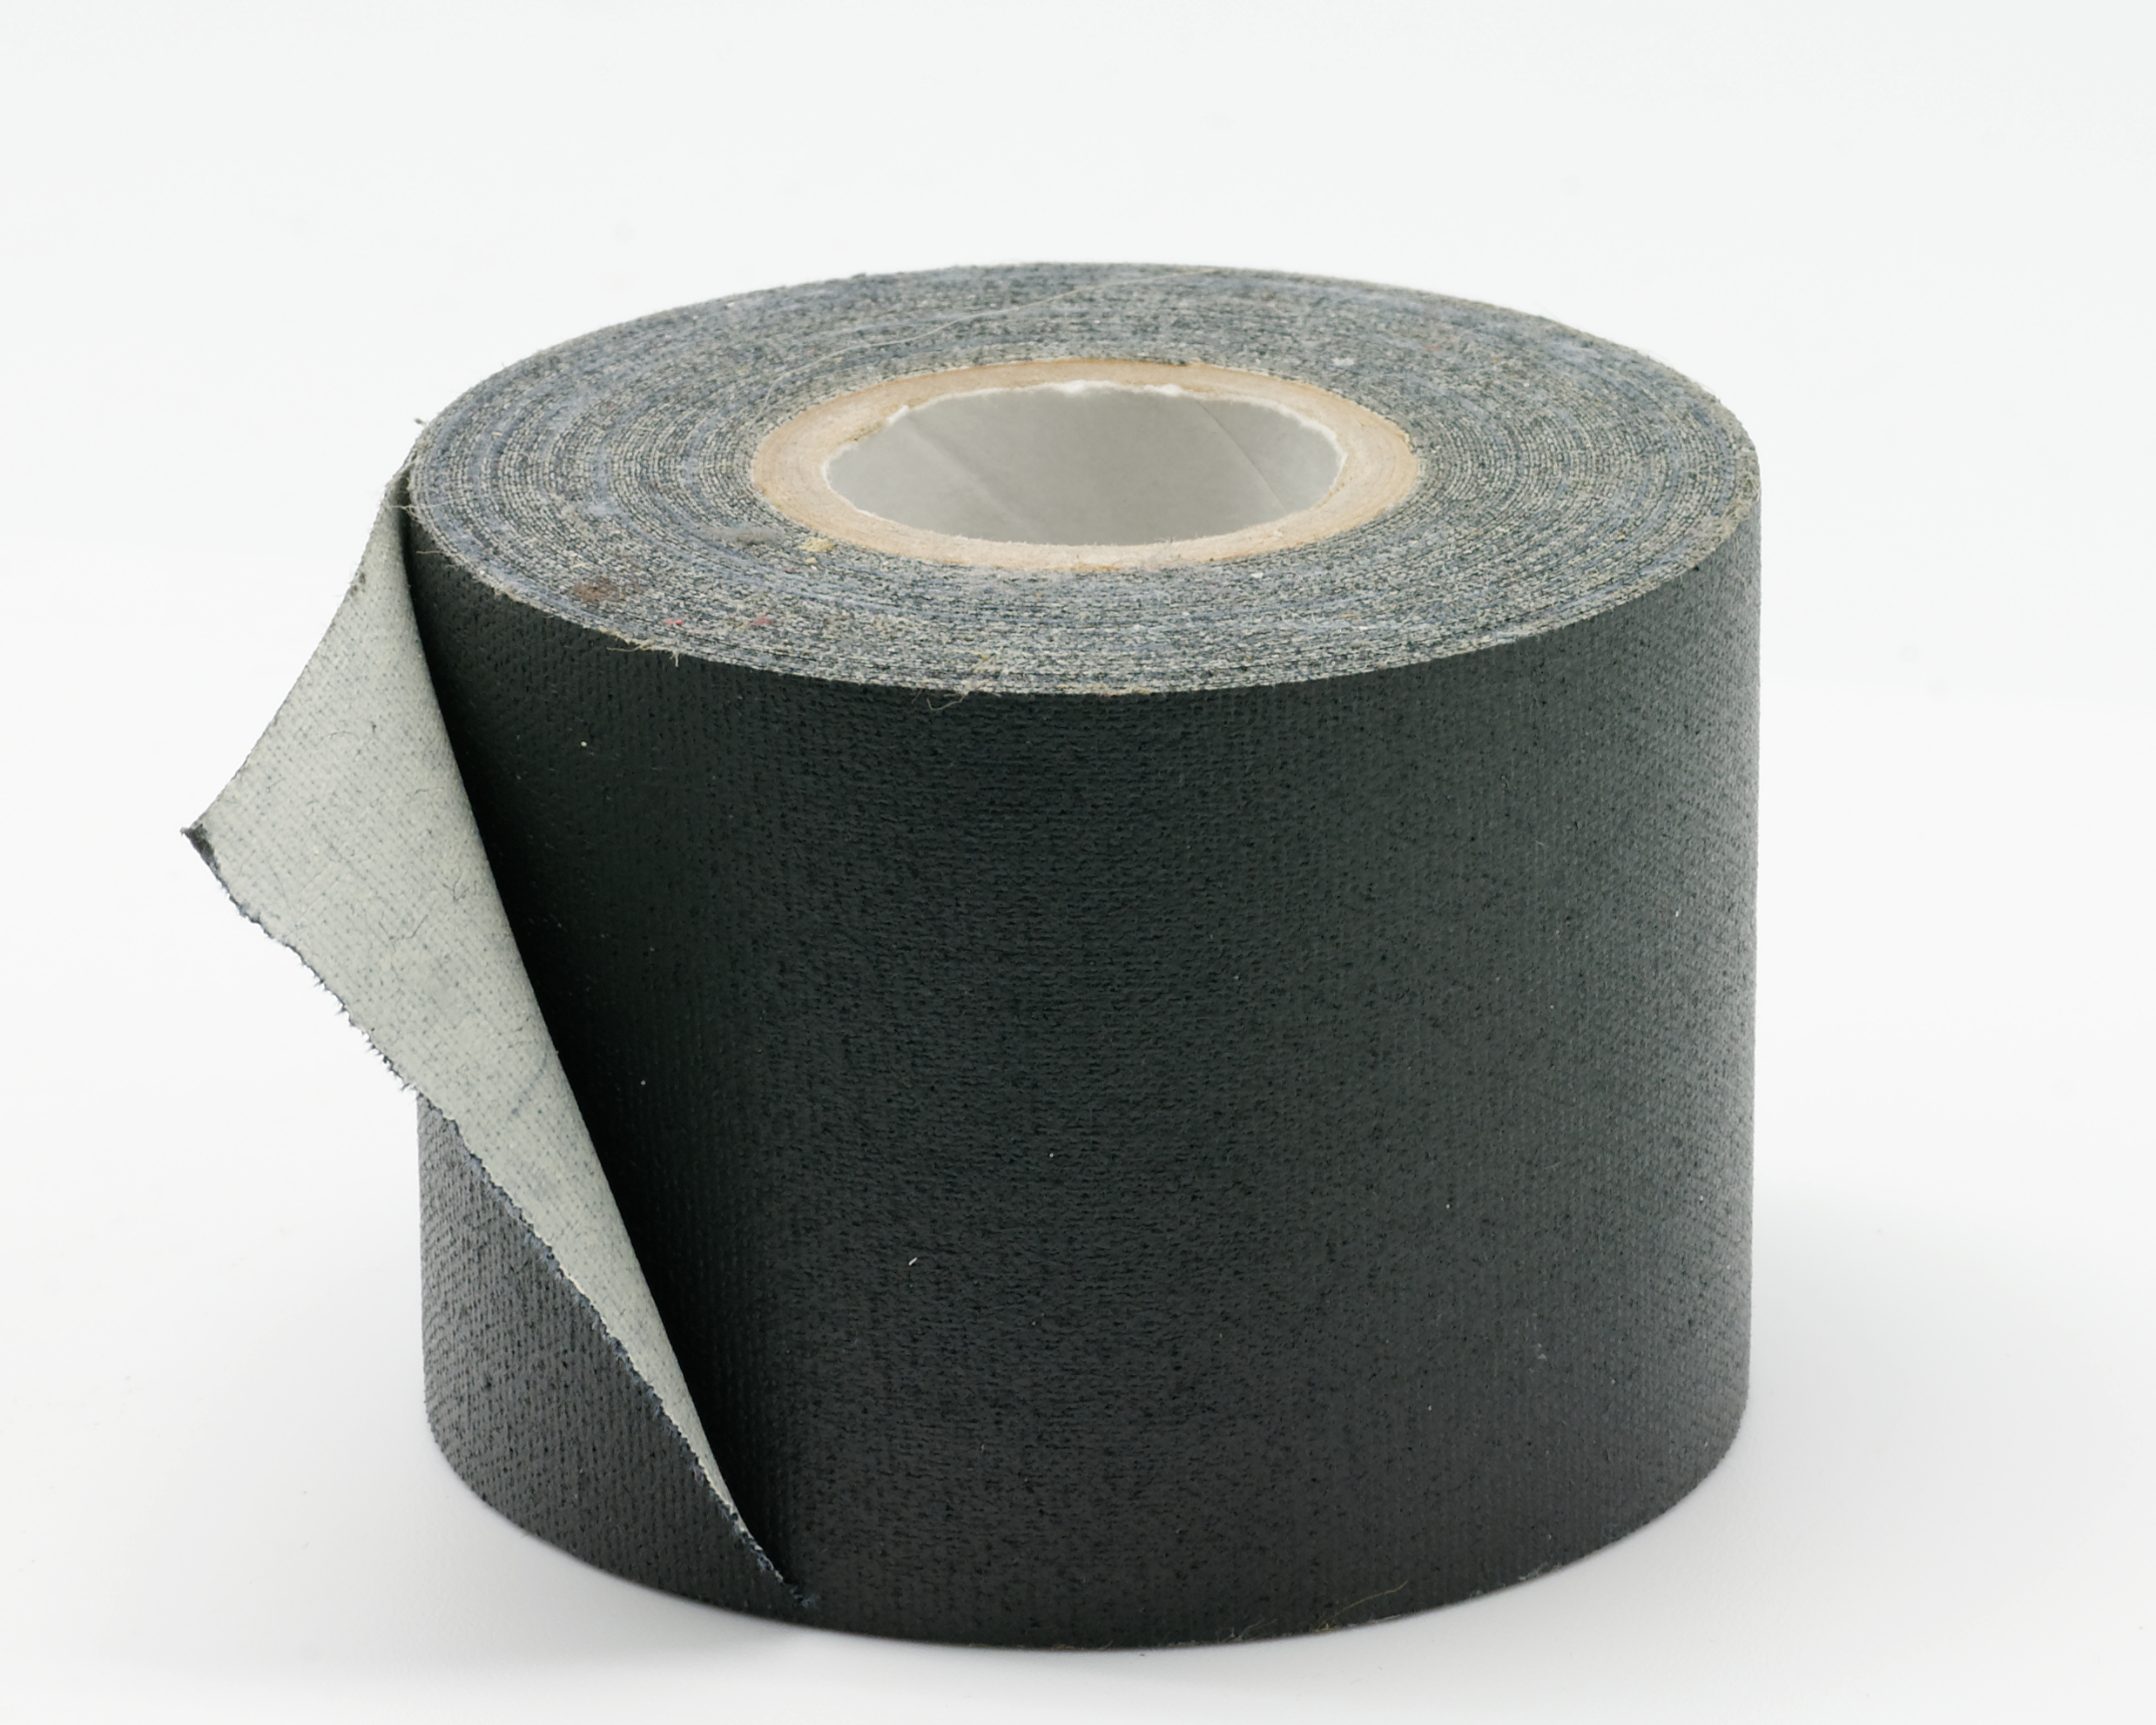 Gaffers Tape, the item Ross invented found on every filmset. Image © Marie-Lan Nguyen / Wikimedia Commons / CC-BY 2.5